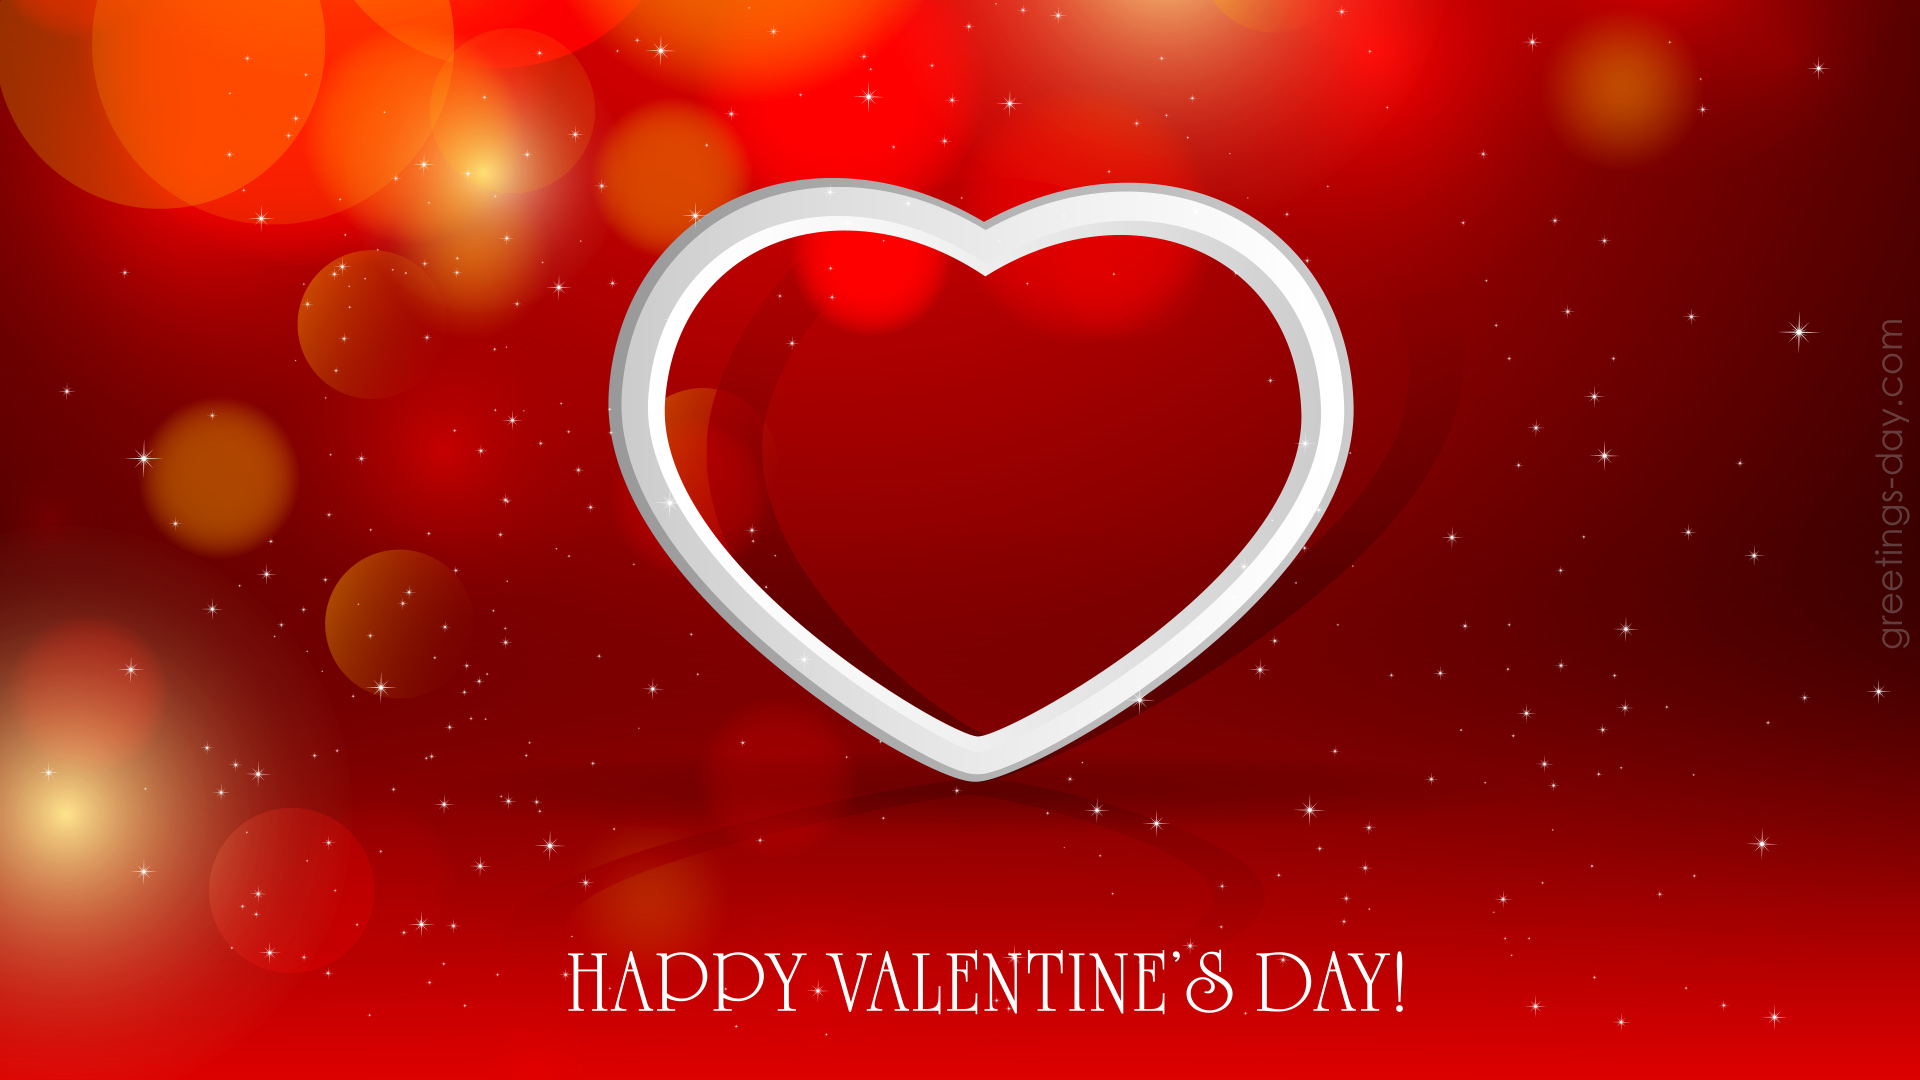 Valentines Day Greeting Cards Pictures Animated GIFs – Saint Valentine Card